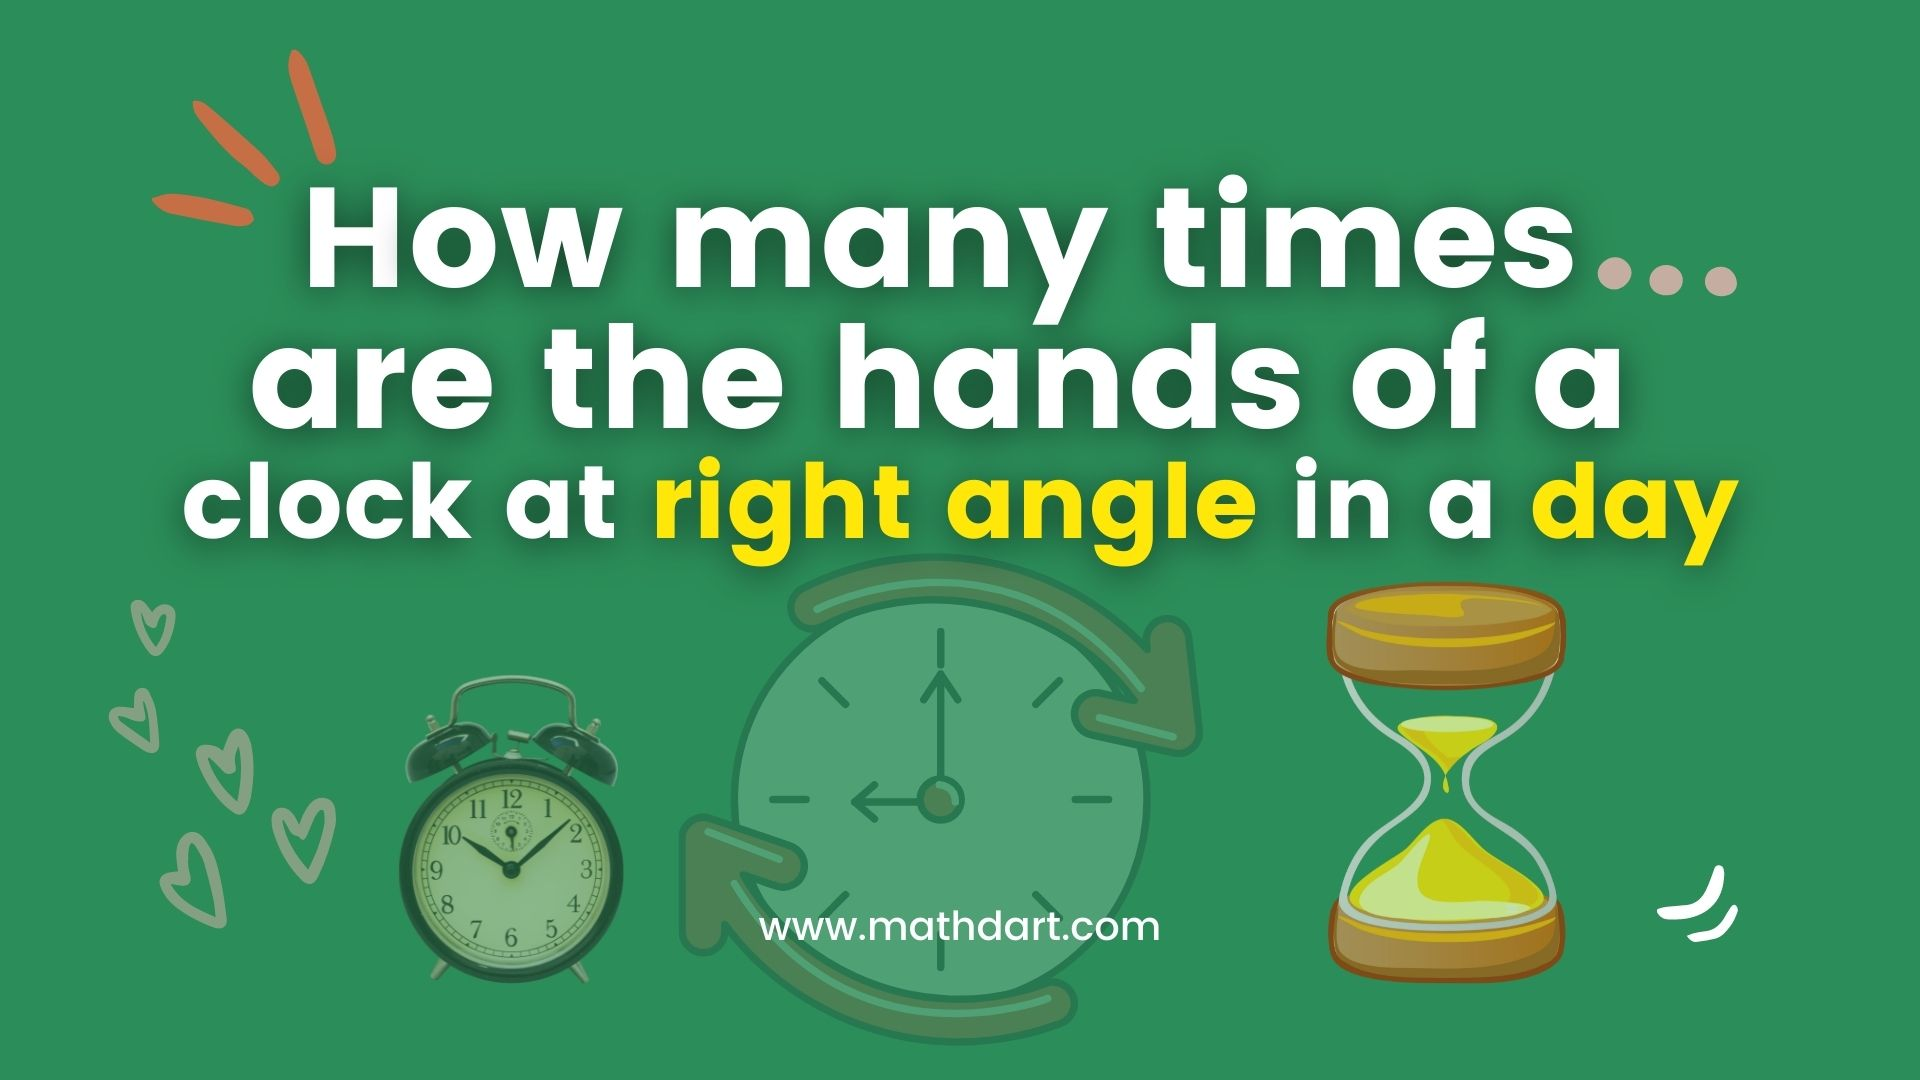 How many times are the hands of a clock at right angle in a day?